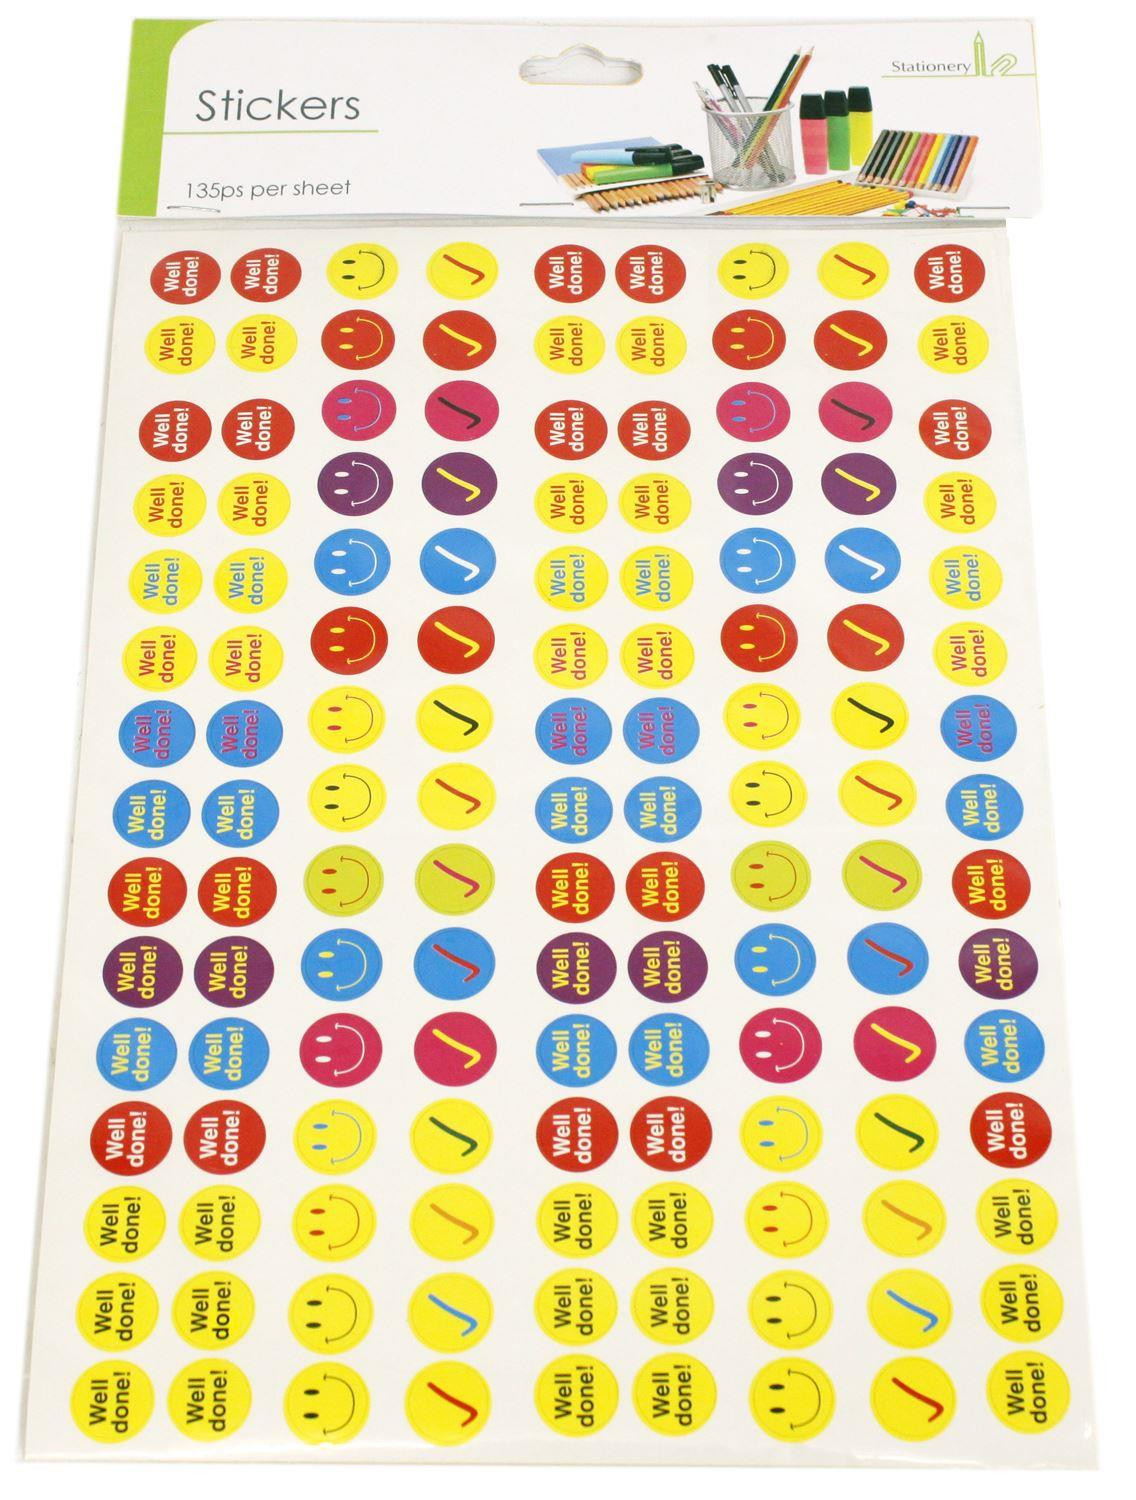 Childrens Reward Chart Smiley Face Well Done Stickers 2 Sheets